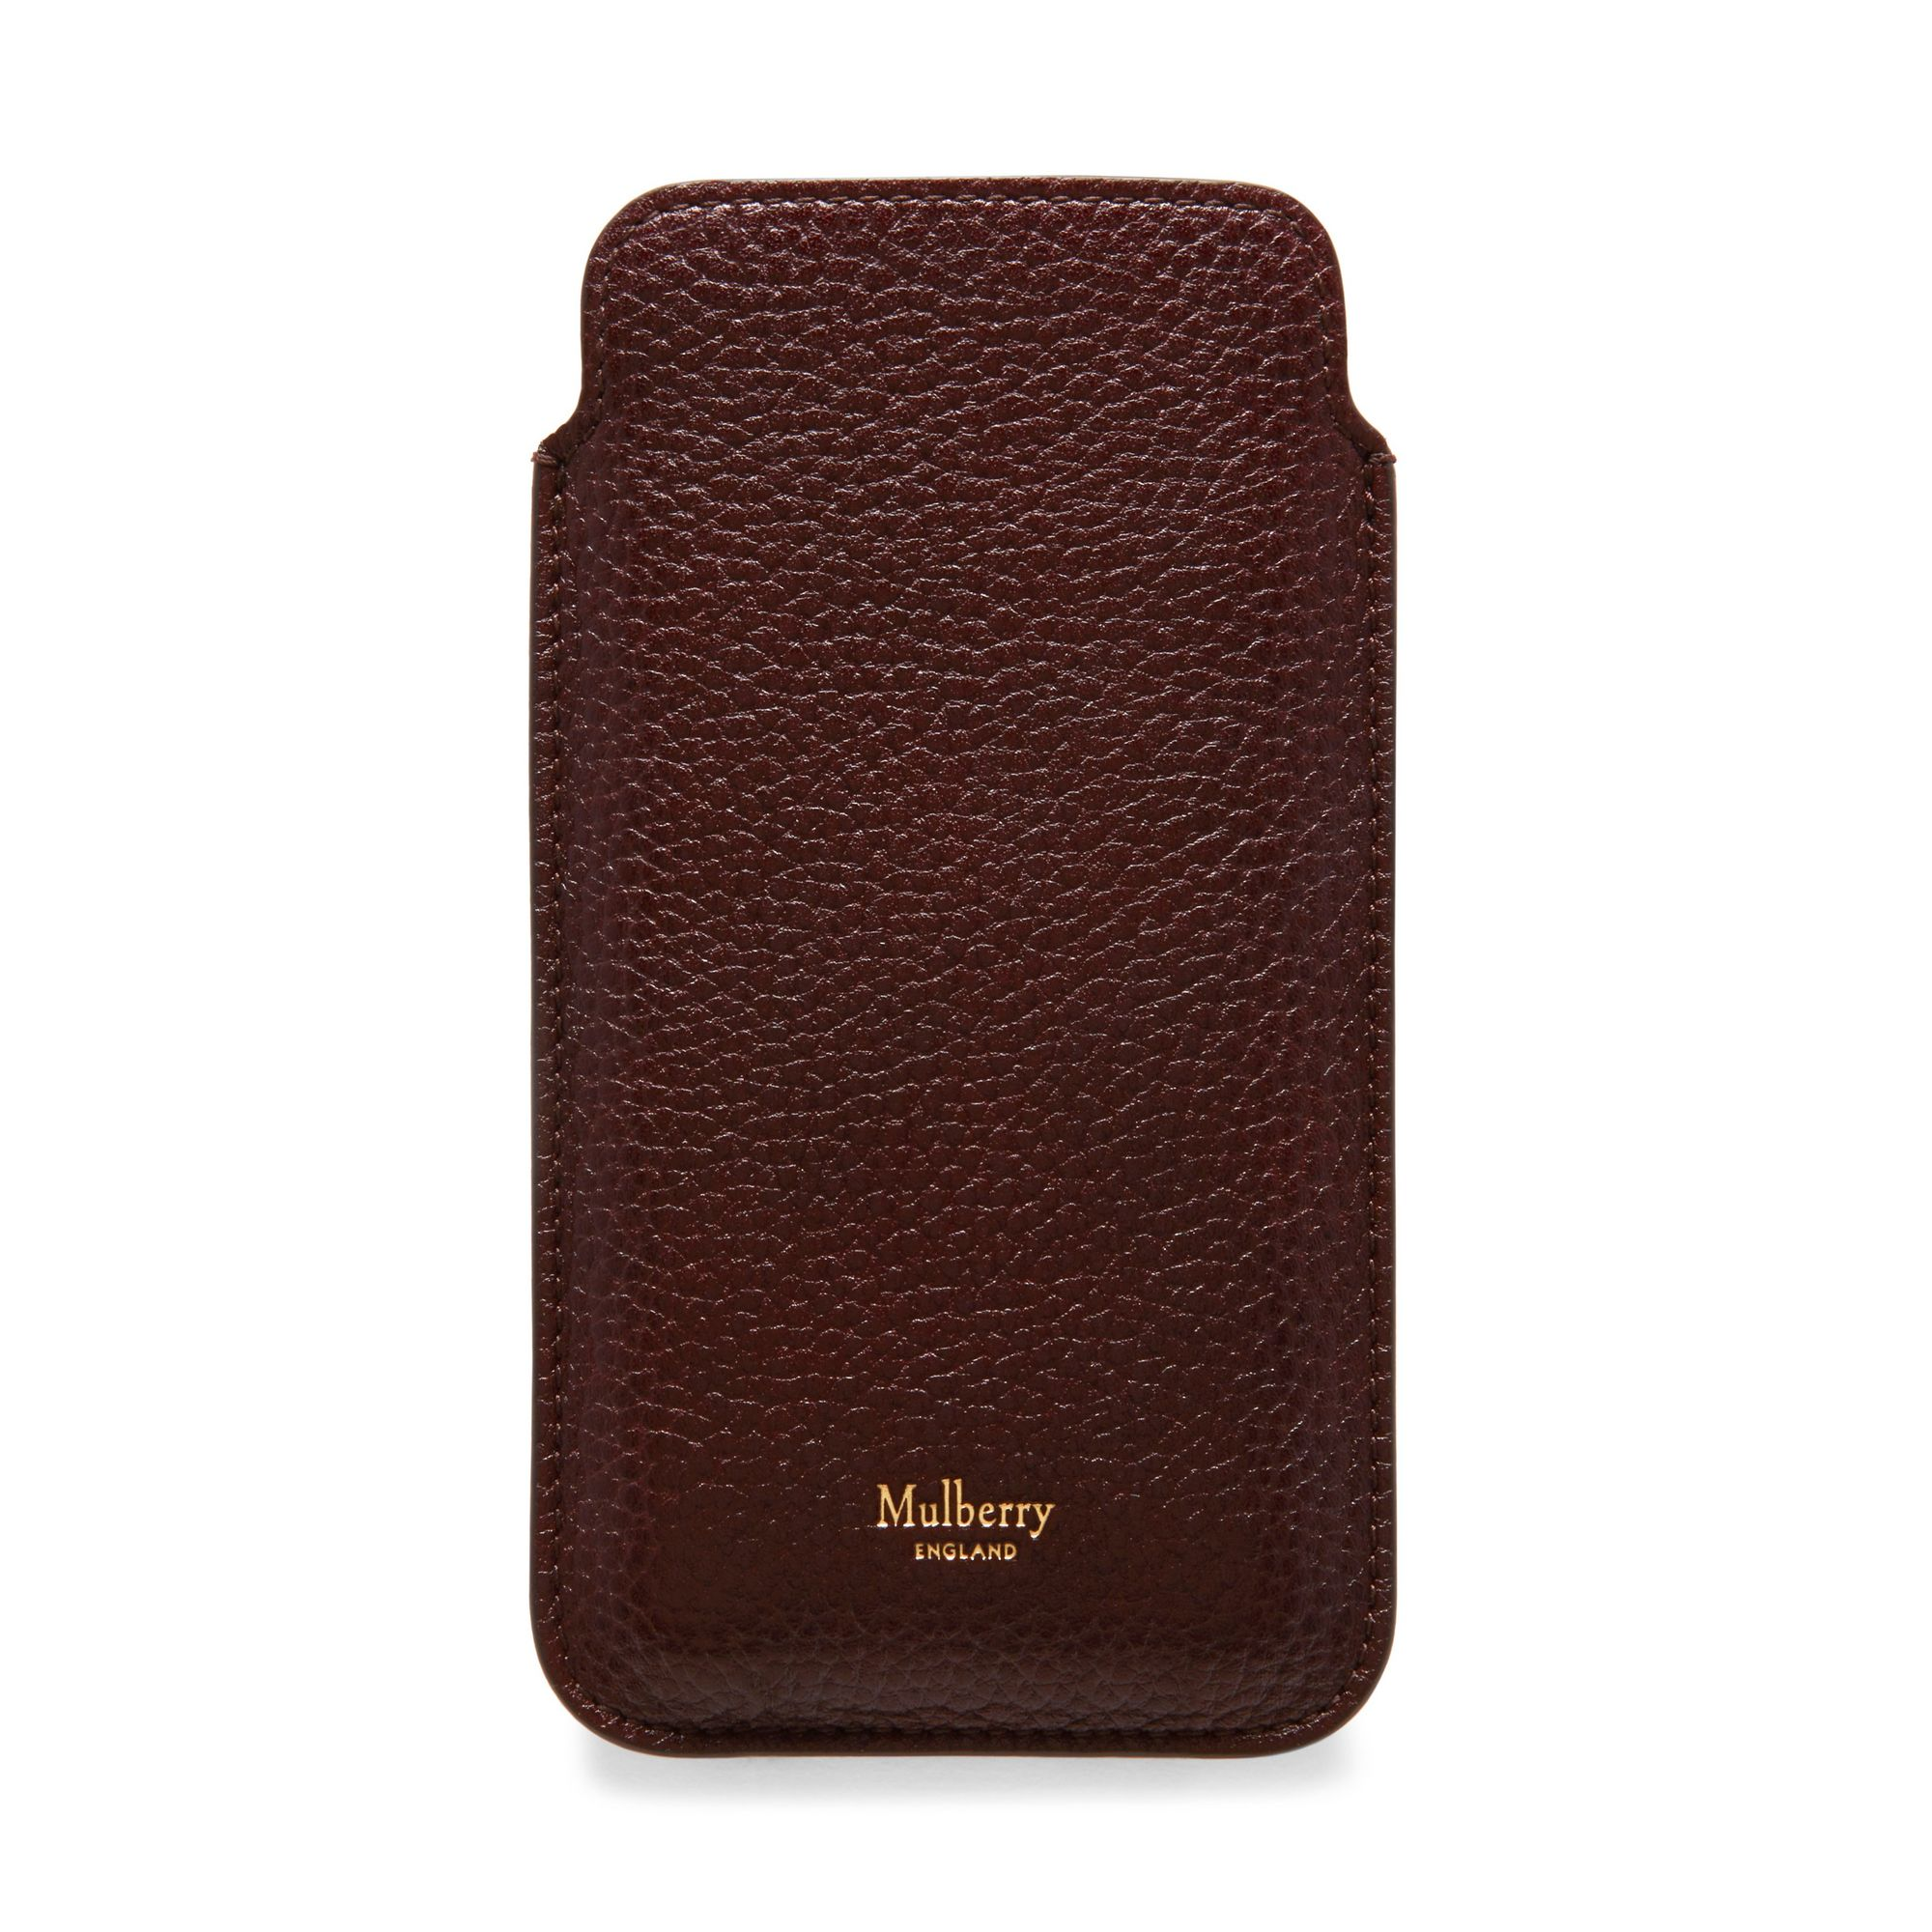 Mulberry Leather iPhone Cover